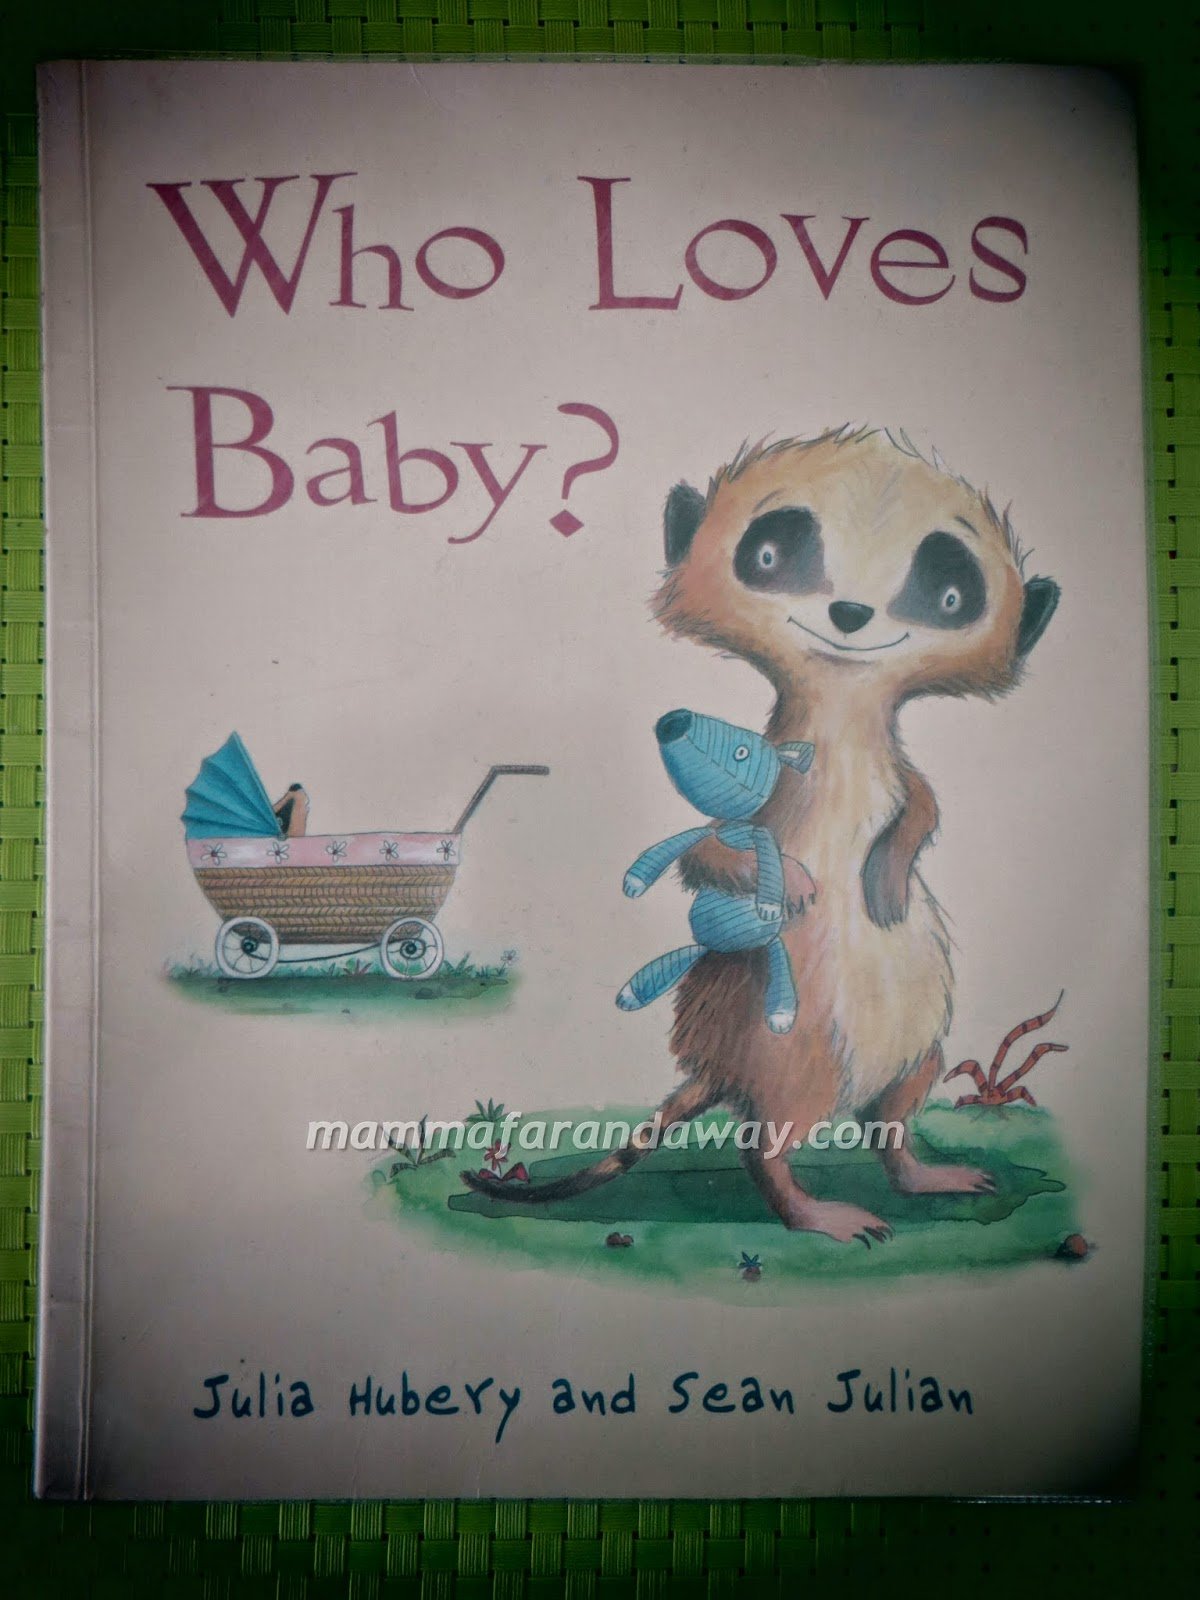 http://www.bookdepository.com/Who-Loves-Baby-/9781848122369/?a_aid=Mammafarandaway